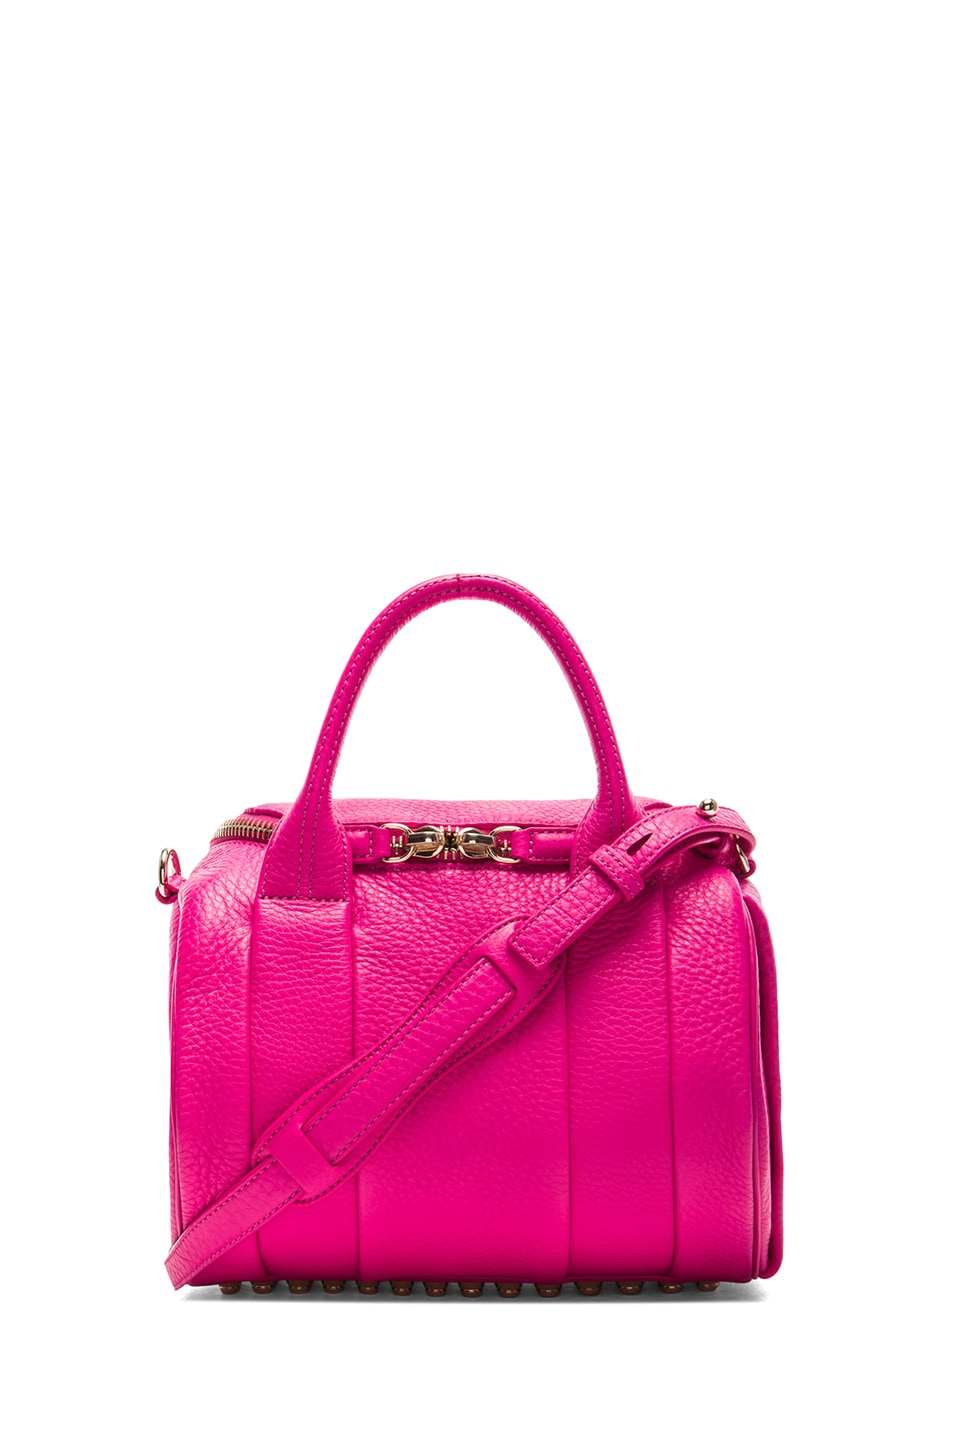 Image 1 of Alexander Wang Rockie Bag in Flamingo